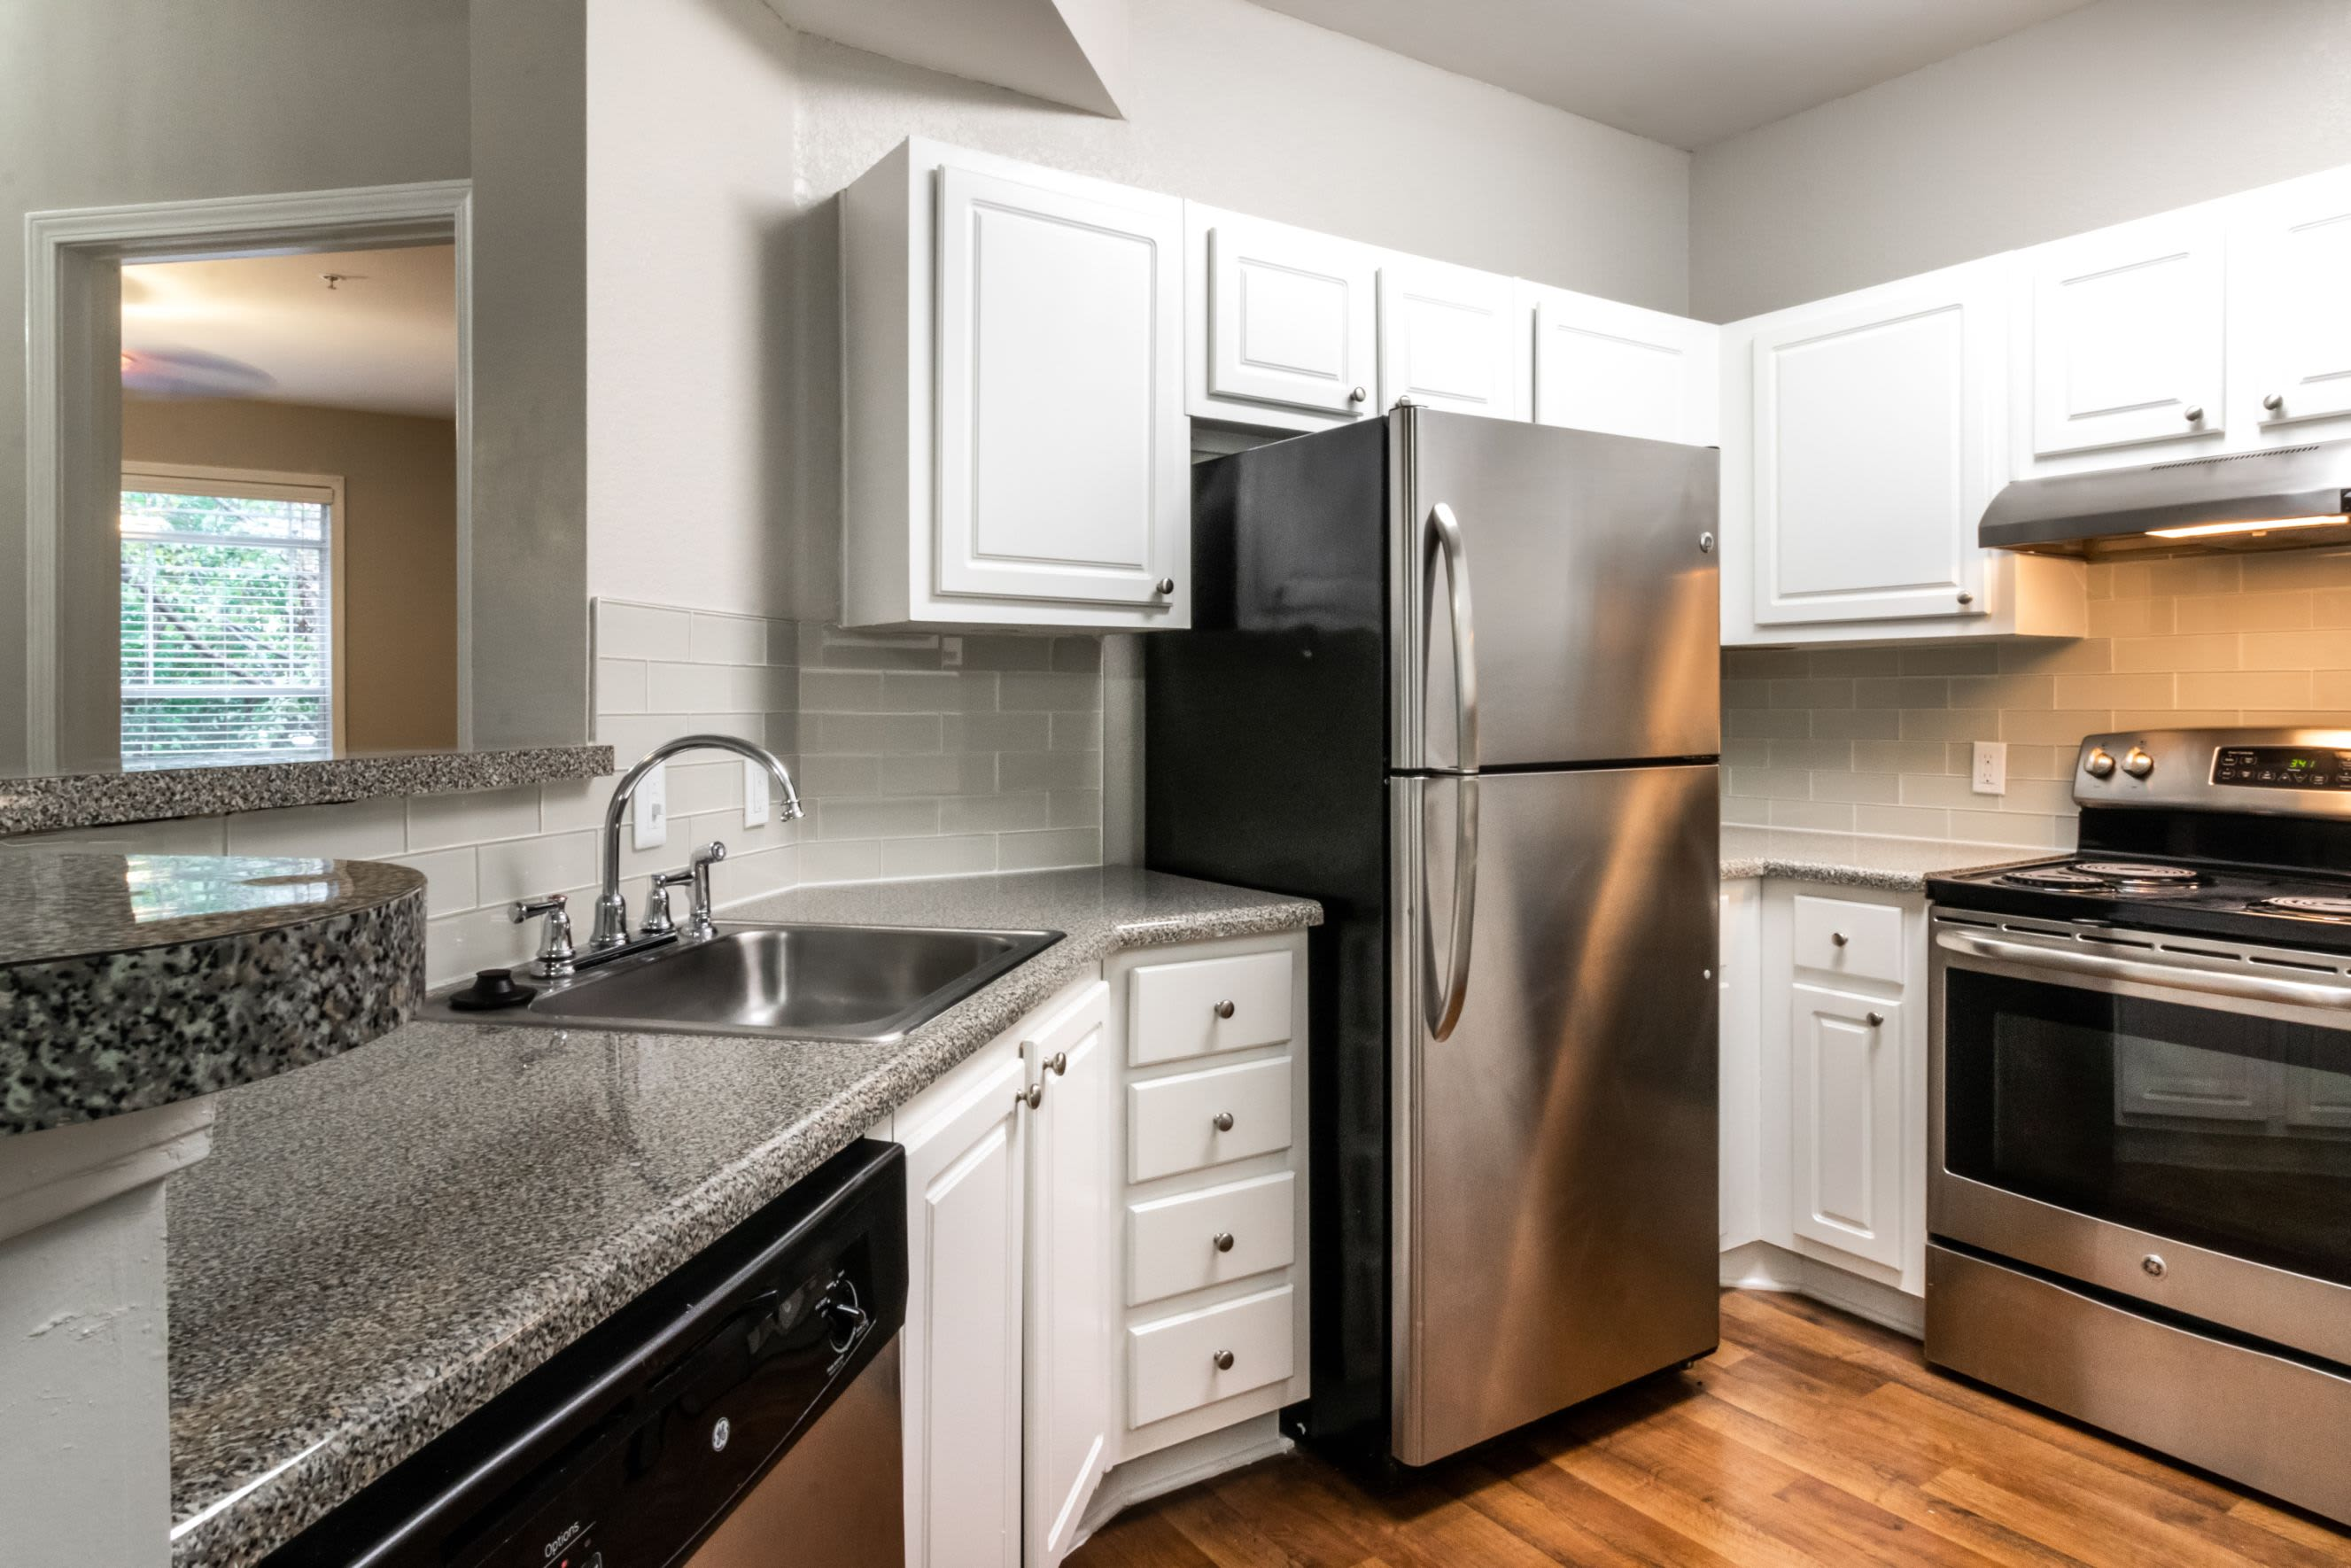 Modern kitchen with stainless steel appliances at Marquis Midtown West in Atlanta, Georgia